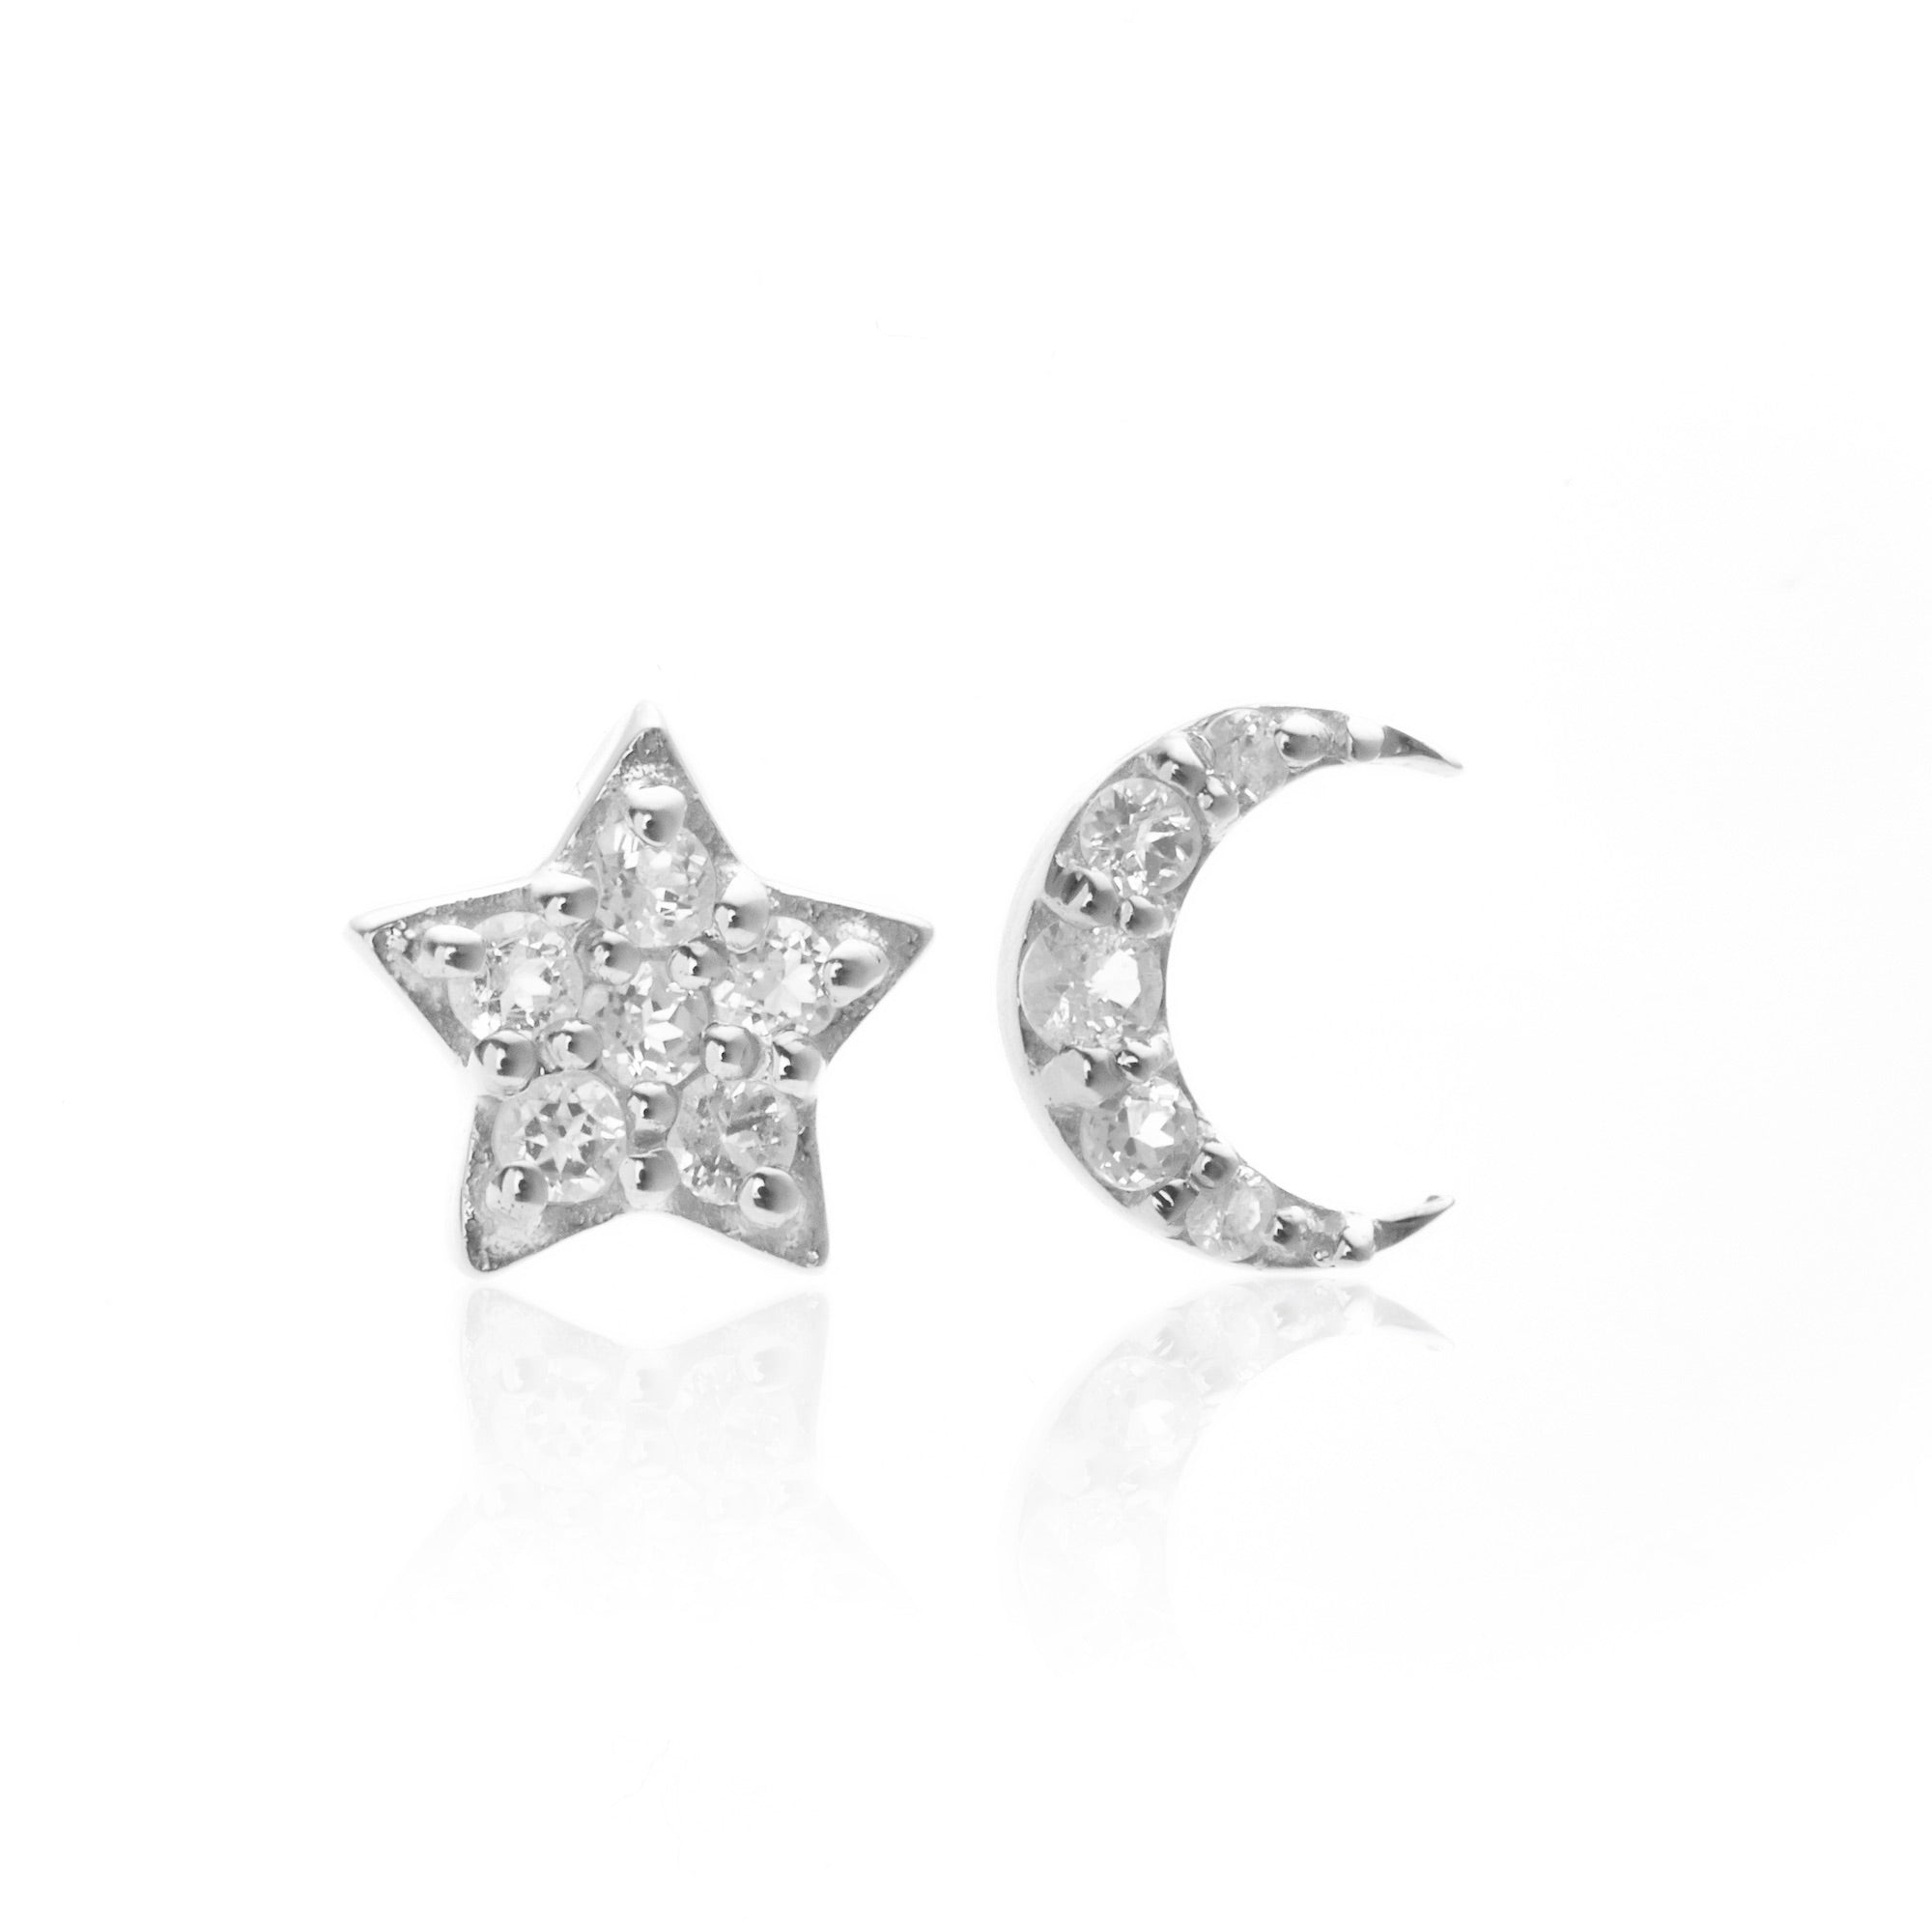 Silk & Steel Jewellery Superfine Celestial Star and Moon White Topaz Earrings